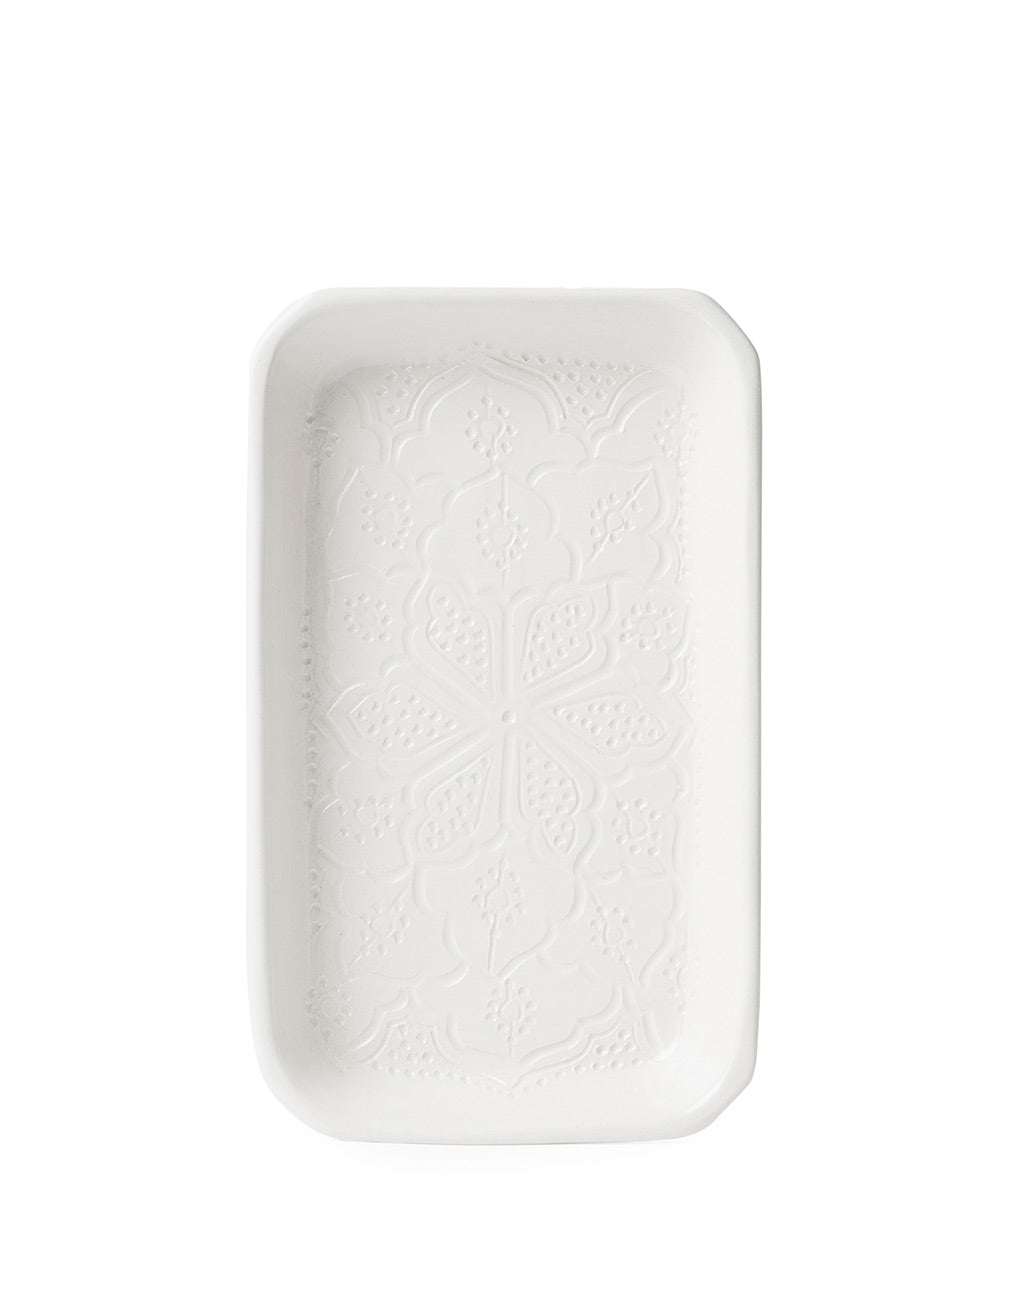 Fair Trade Moroccan Ceramic Tray, White